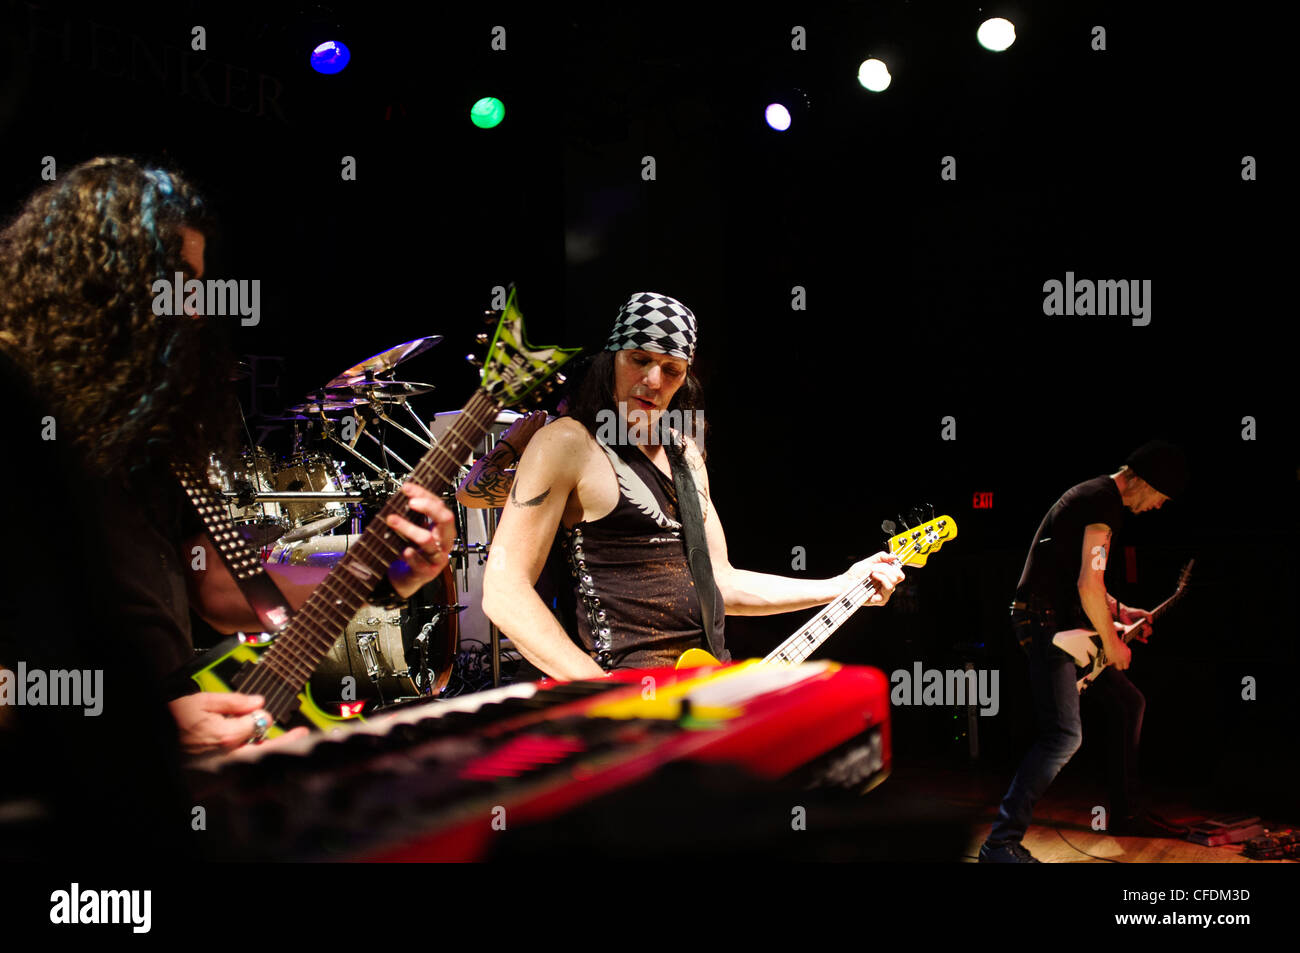 Elliott Rubinson of the Michael Schenker Group Playing at The Empire Club in Springfield, Virginia. March 2012 - Stock Image